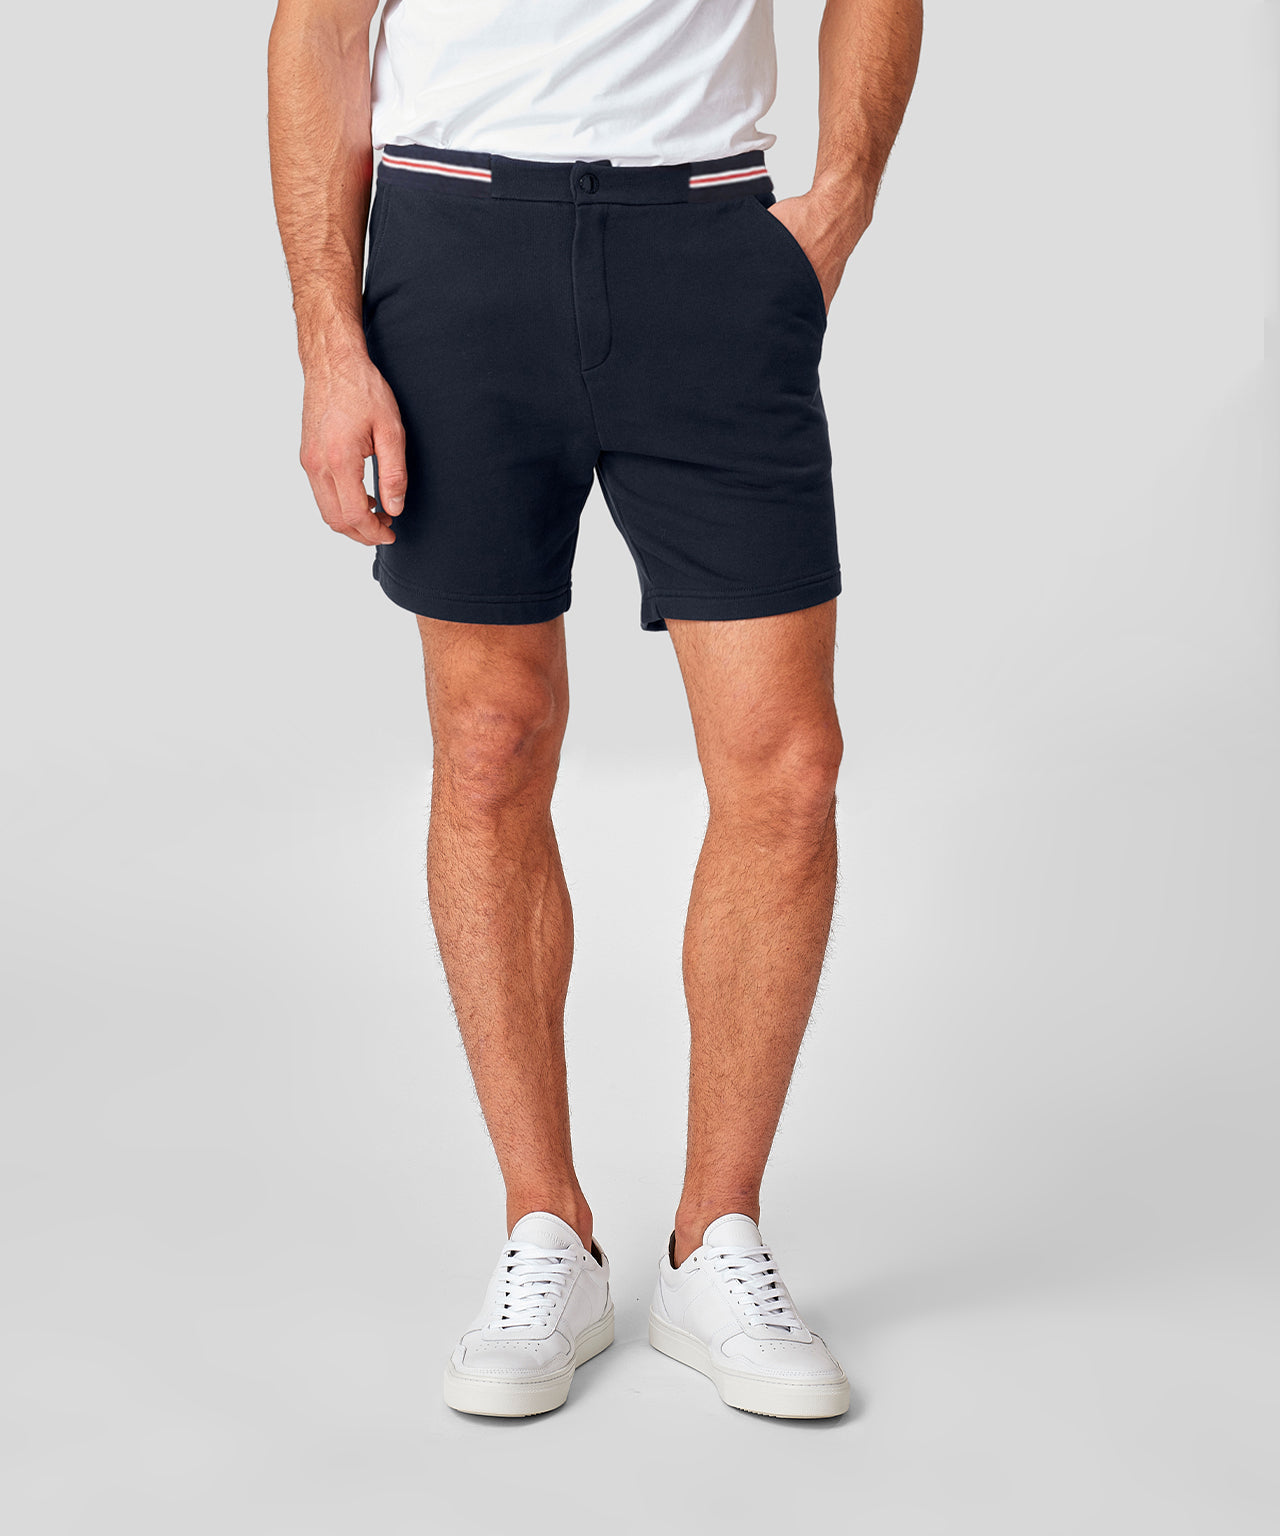 Urban Shorts Waist Stripes - navy